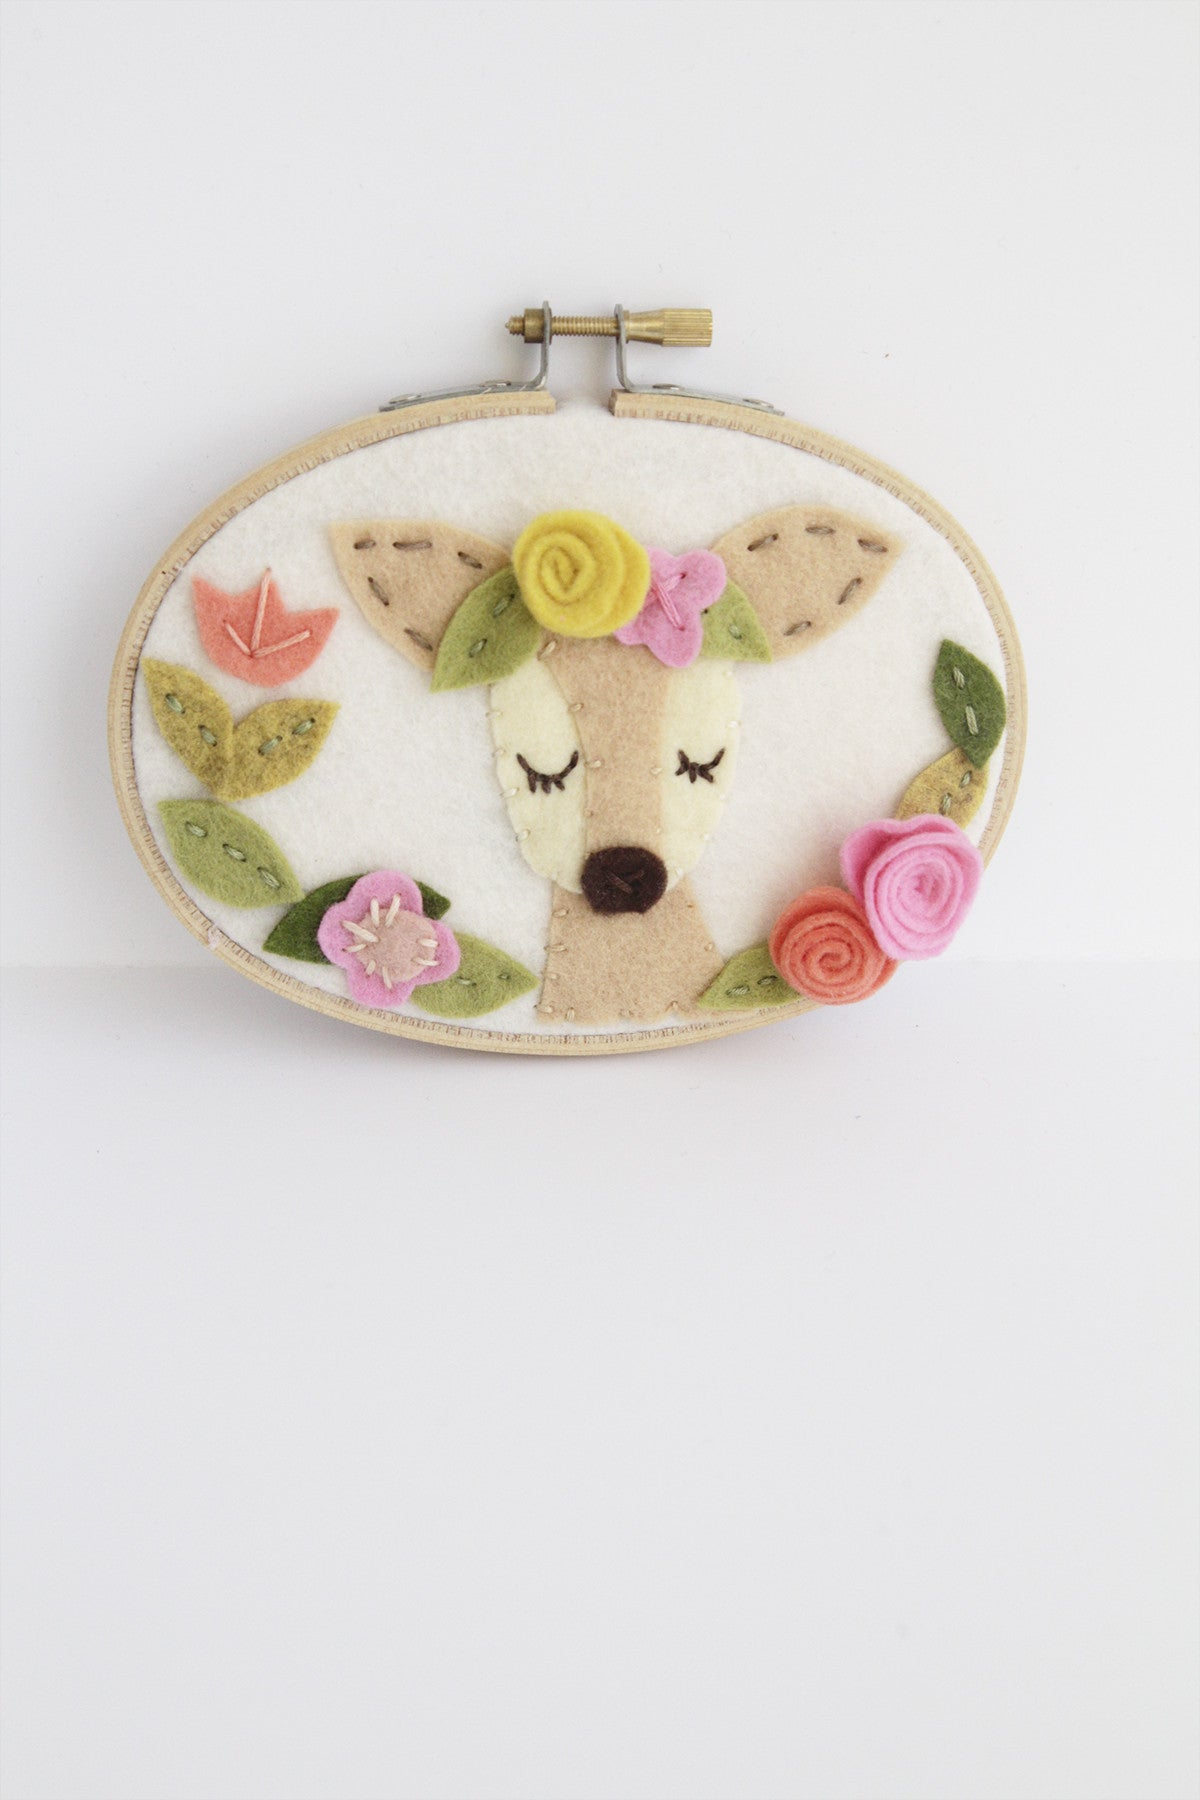 New Meditating Deer With Flower Crown Wall Art Catshy Crafts